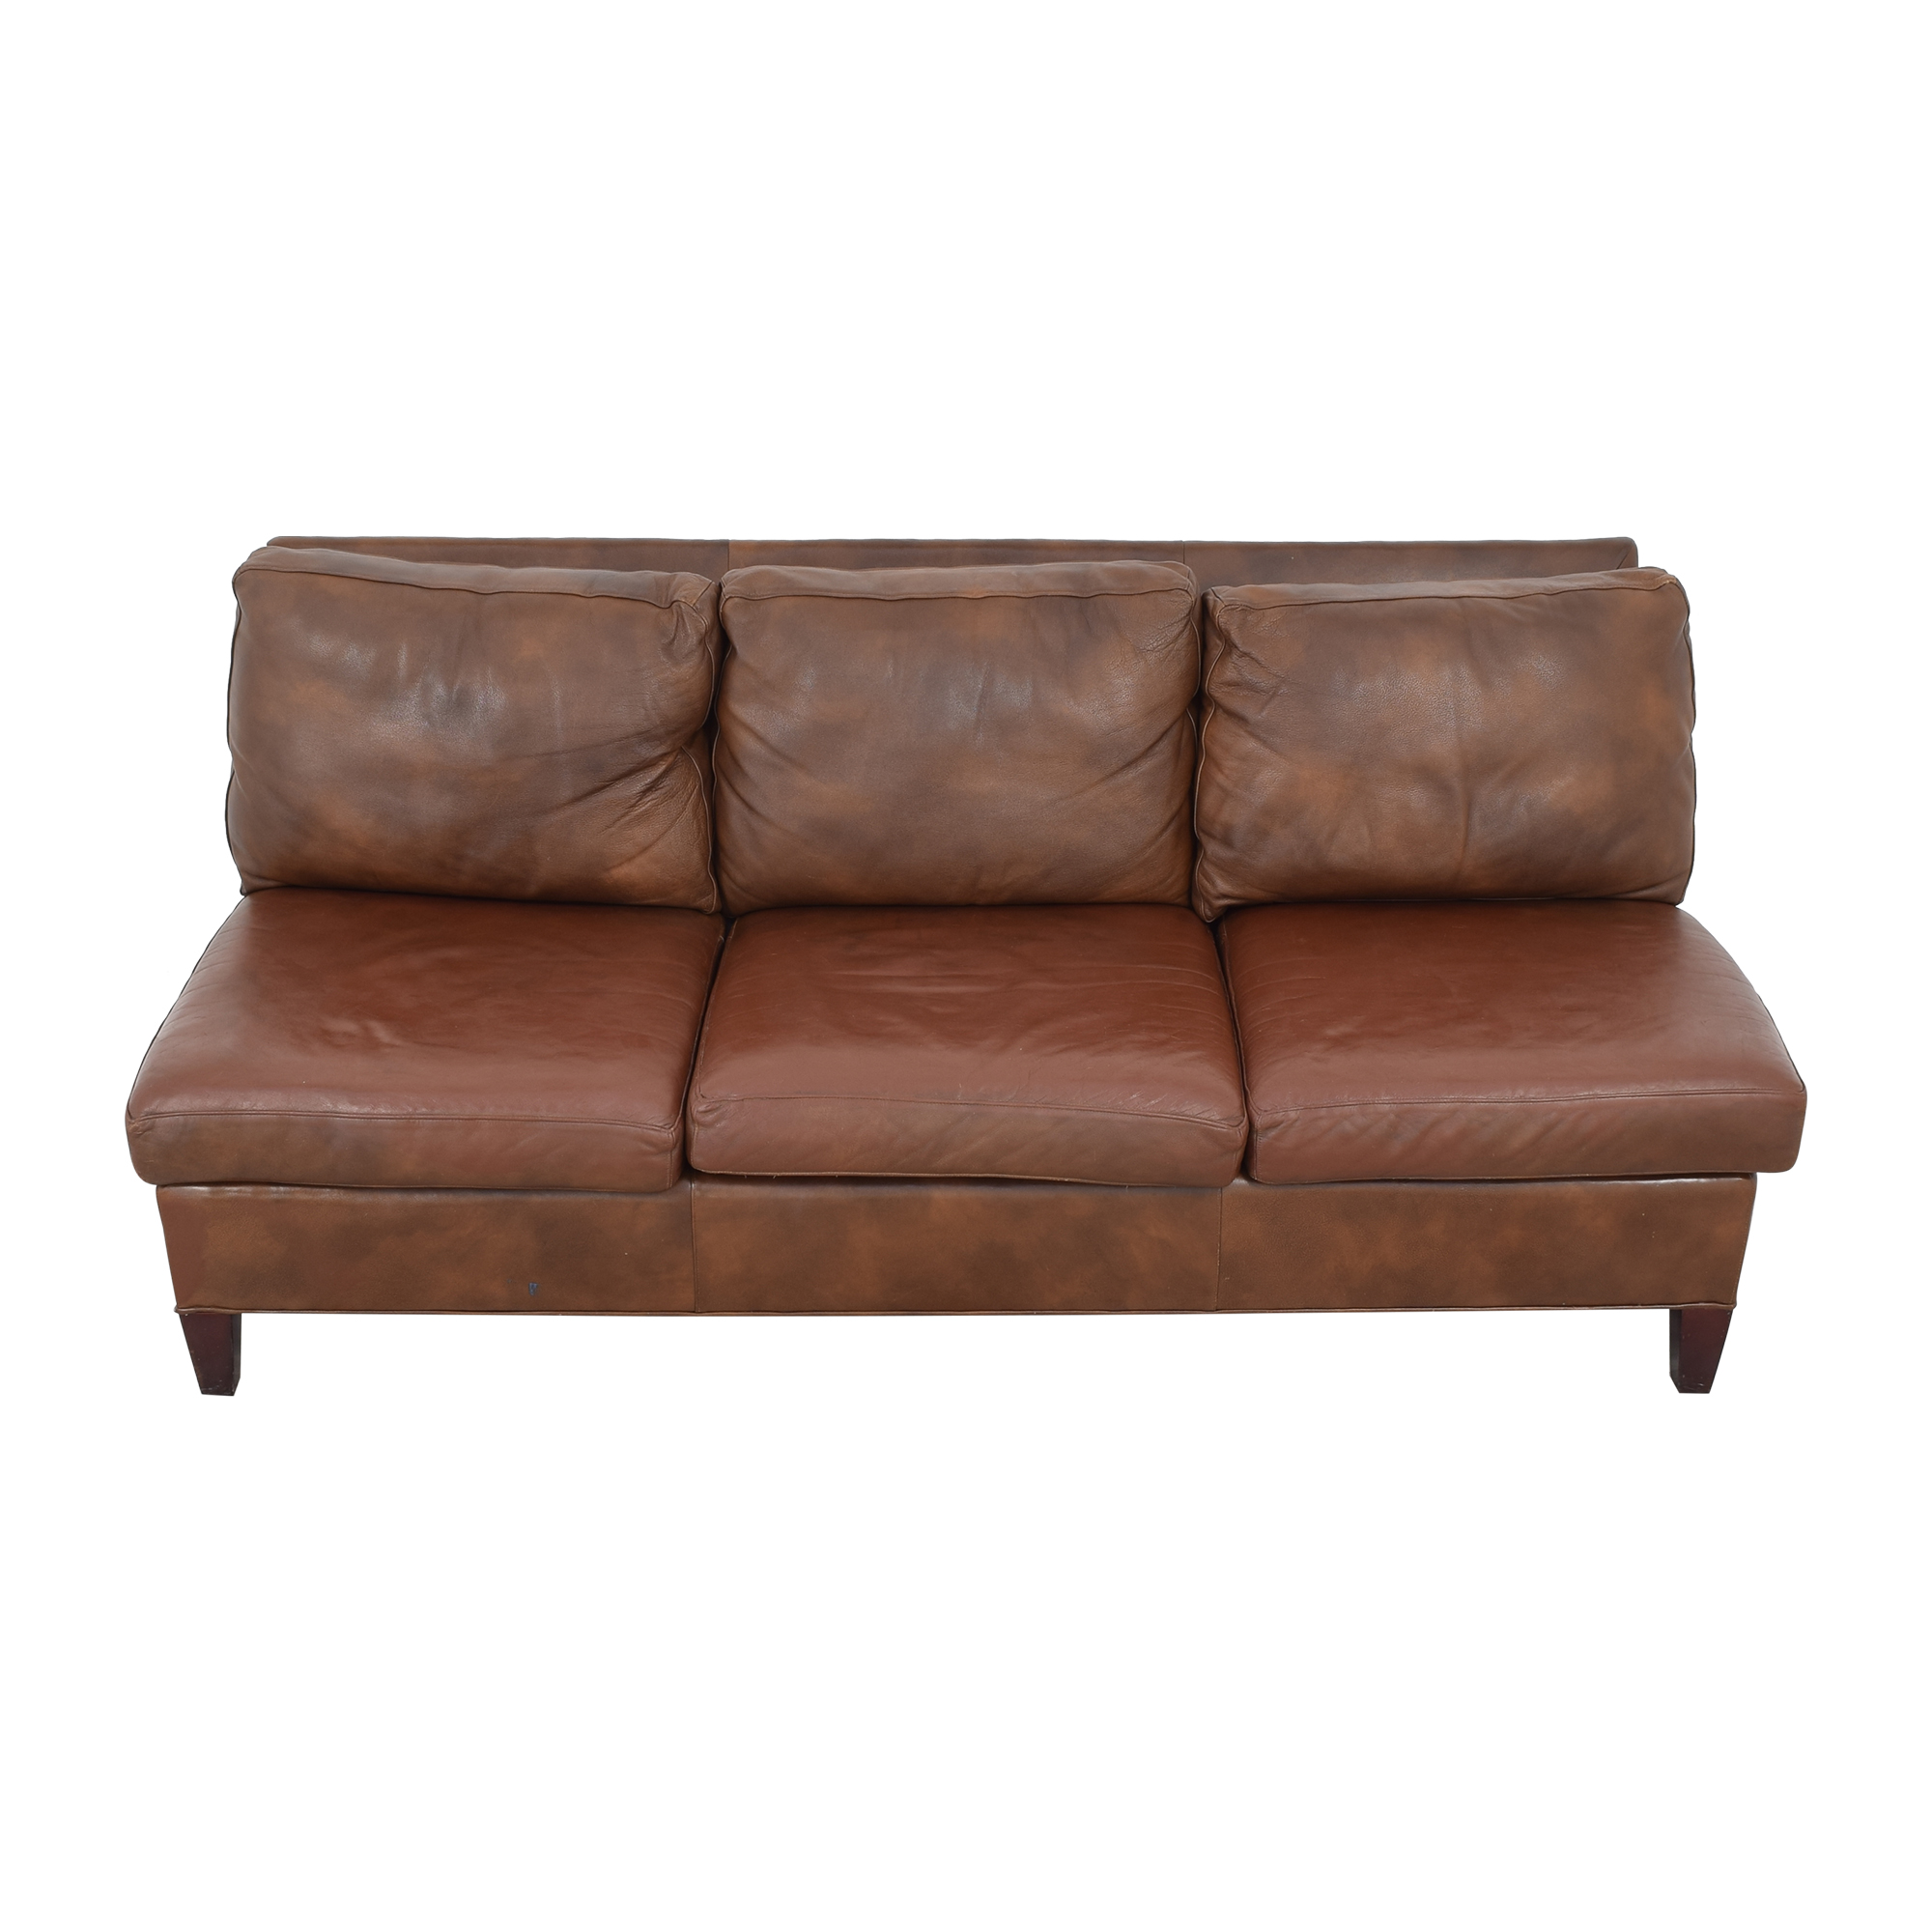 McKinley Leather Furniture McKinley Leather Furniture Armless Sofa discount